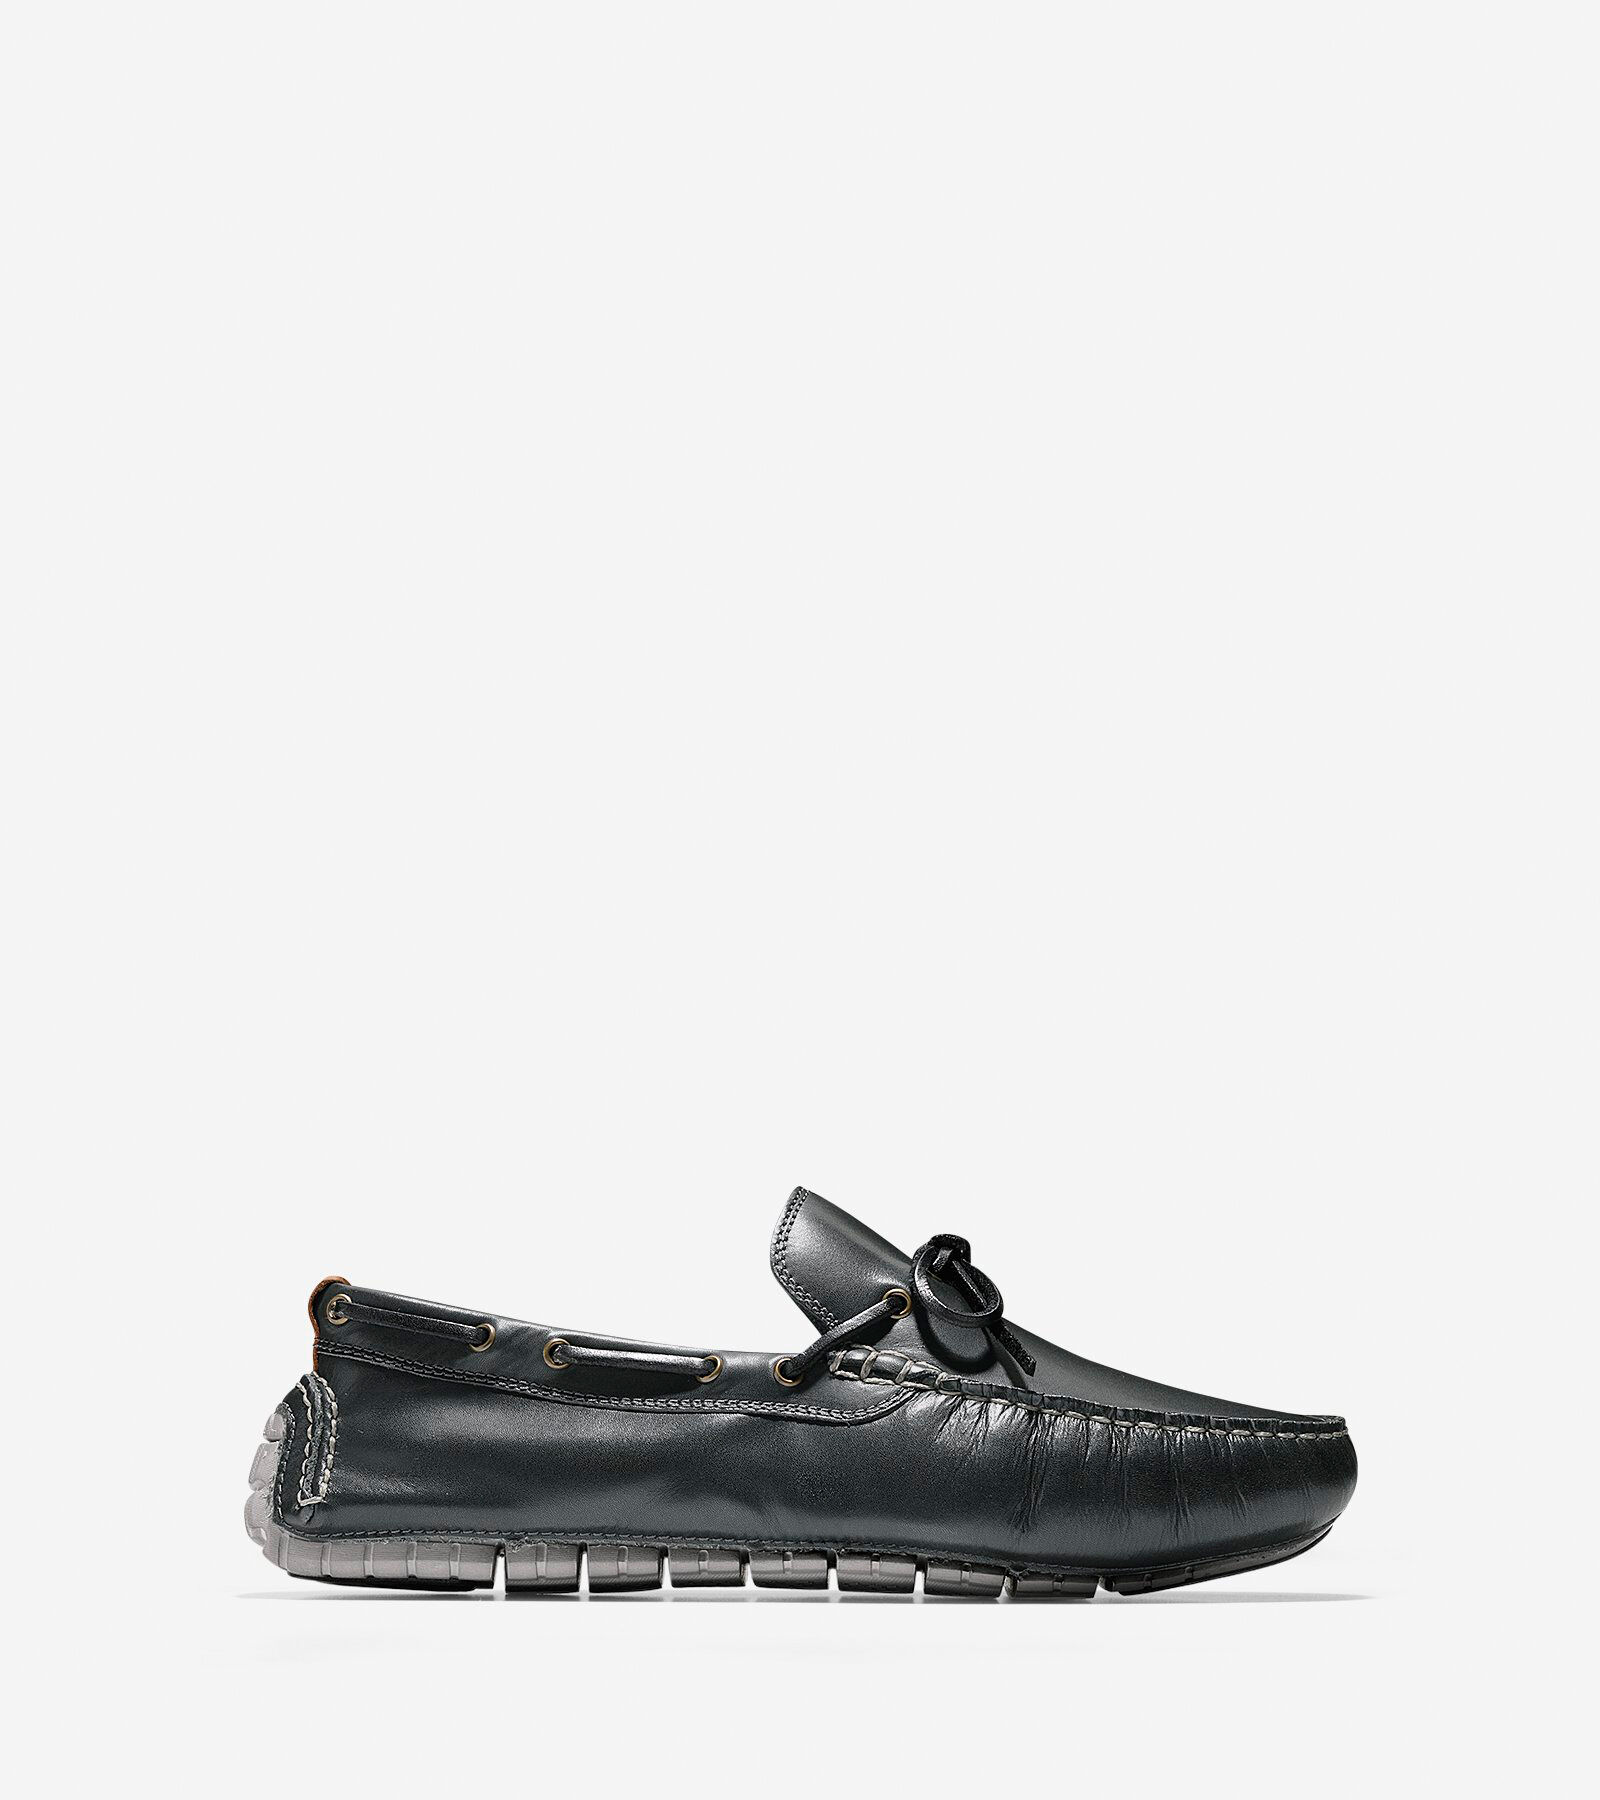 Cole haan bergamo mens shoes